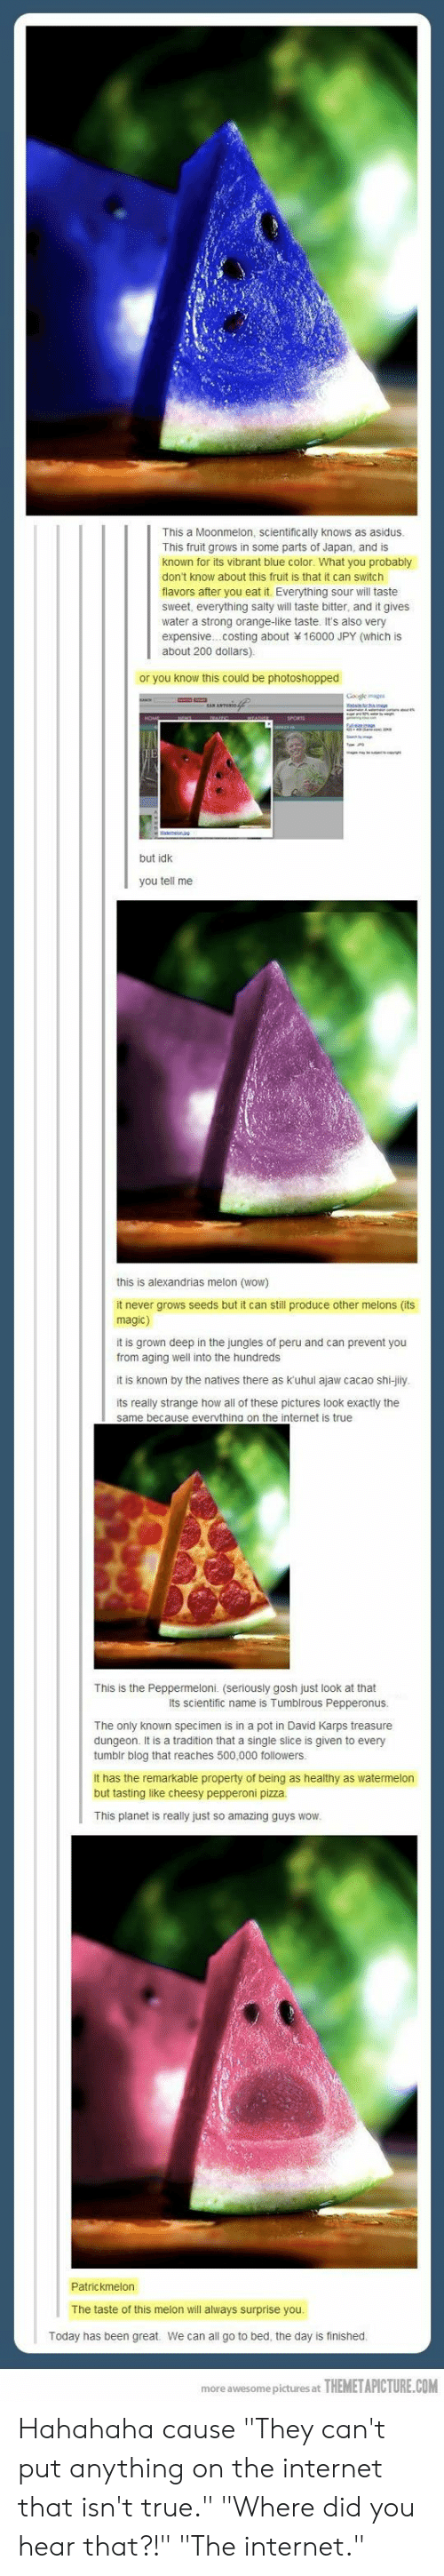 "Internet, Pizza, and Being Salty: This a Moonmelon, scientifically knows as asidus  This fruit grows in some parts of Japan, and is  known for its vibrant blue color. What you probably  don't know about this fruit is that it can switch  flavors after you eat it. Everything sour will taste  sweet, everything salty will taste bitter, and it gives  water a strong orange-like taste. It's also very  expensive...costing about 16000 JPY (which is  about 200 dollars)  or you know this could be photoshopped  but idk  you tell me  this is alexandrias melon (wow)  it never grows seeds but it can still produce other melons (its  magic)  it is grown deep in the jungles of peru and can prevent you  from aging well into the hundreds  it is known by the natives there as kuhul ajaw cacao shi-jily  its really strange how all of these pictures look exactly the  same because evervthing on the internet is true  This is the Peppermeloni. (seriously gosh just look at that  Its scientific name is Tumblrous Pepperonus  The only known specimen is in a pot in David Karps treasure  dungeon. It is a tradition that a single slice is given to every  tumbir blog that reaches 500,000 followers  It has the remarkable property of being as healthy as watermelon  but tasting like cheesy pepperoni pizza  This planet is really just so amazing guys wow  The taste of this melon wil always surprise you  Today has been great  We can all go to bed, the day is finished  more awesome pictures at  THEMETAPICTURE.COM Hahahaha cause ""They can't put anything on the internet that isn't true."" ""Where did you hear that?!"" ""The internet."""